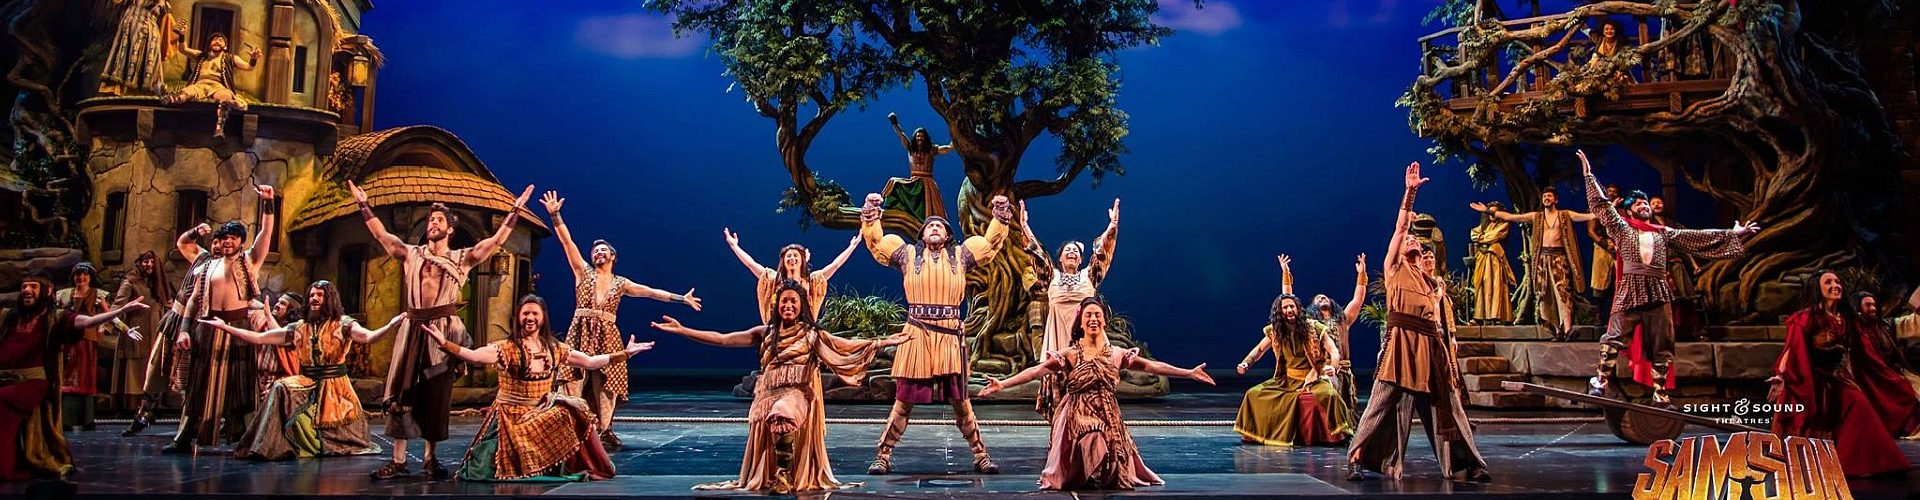 Miracle Of Christmas Sight And Sound 2019 Samson & Miracle of Christmas Return to Branson in 2019!   Branson